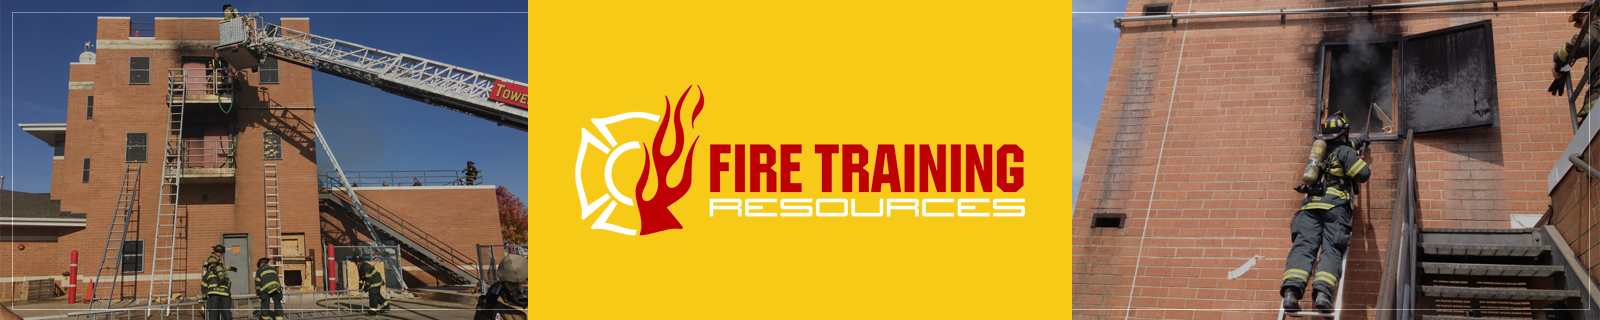 Machinery Rescue Operations Course Class 1 - Waukesha, WI